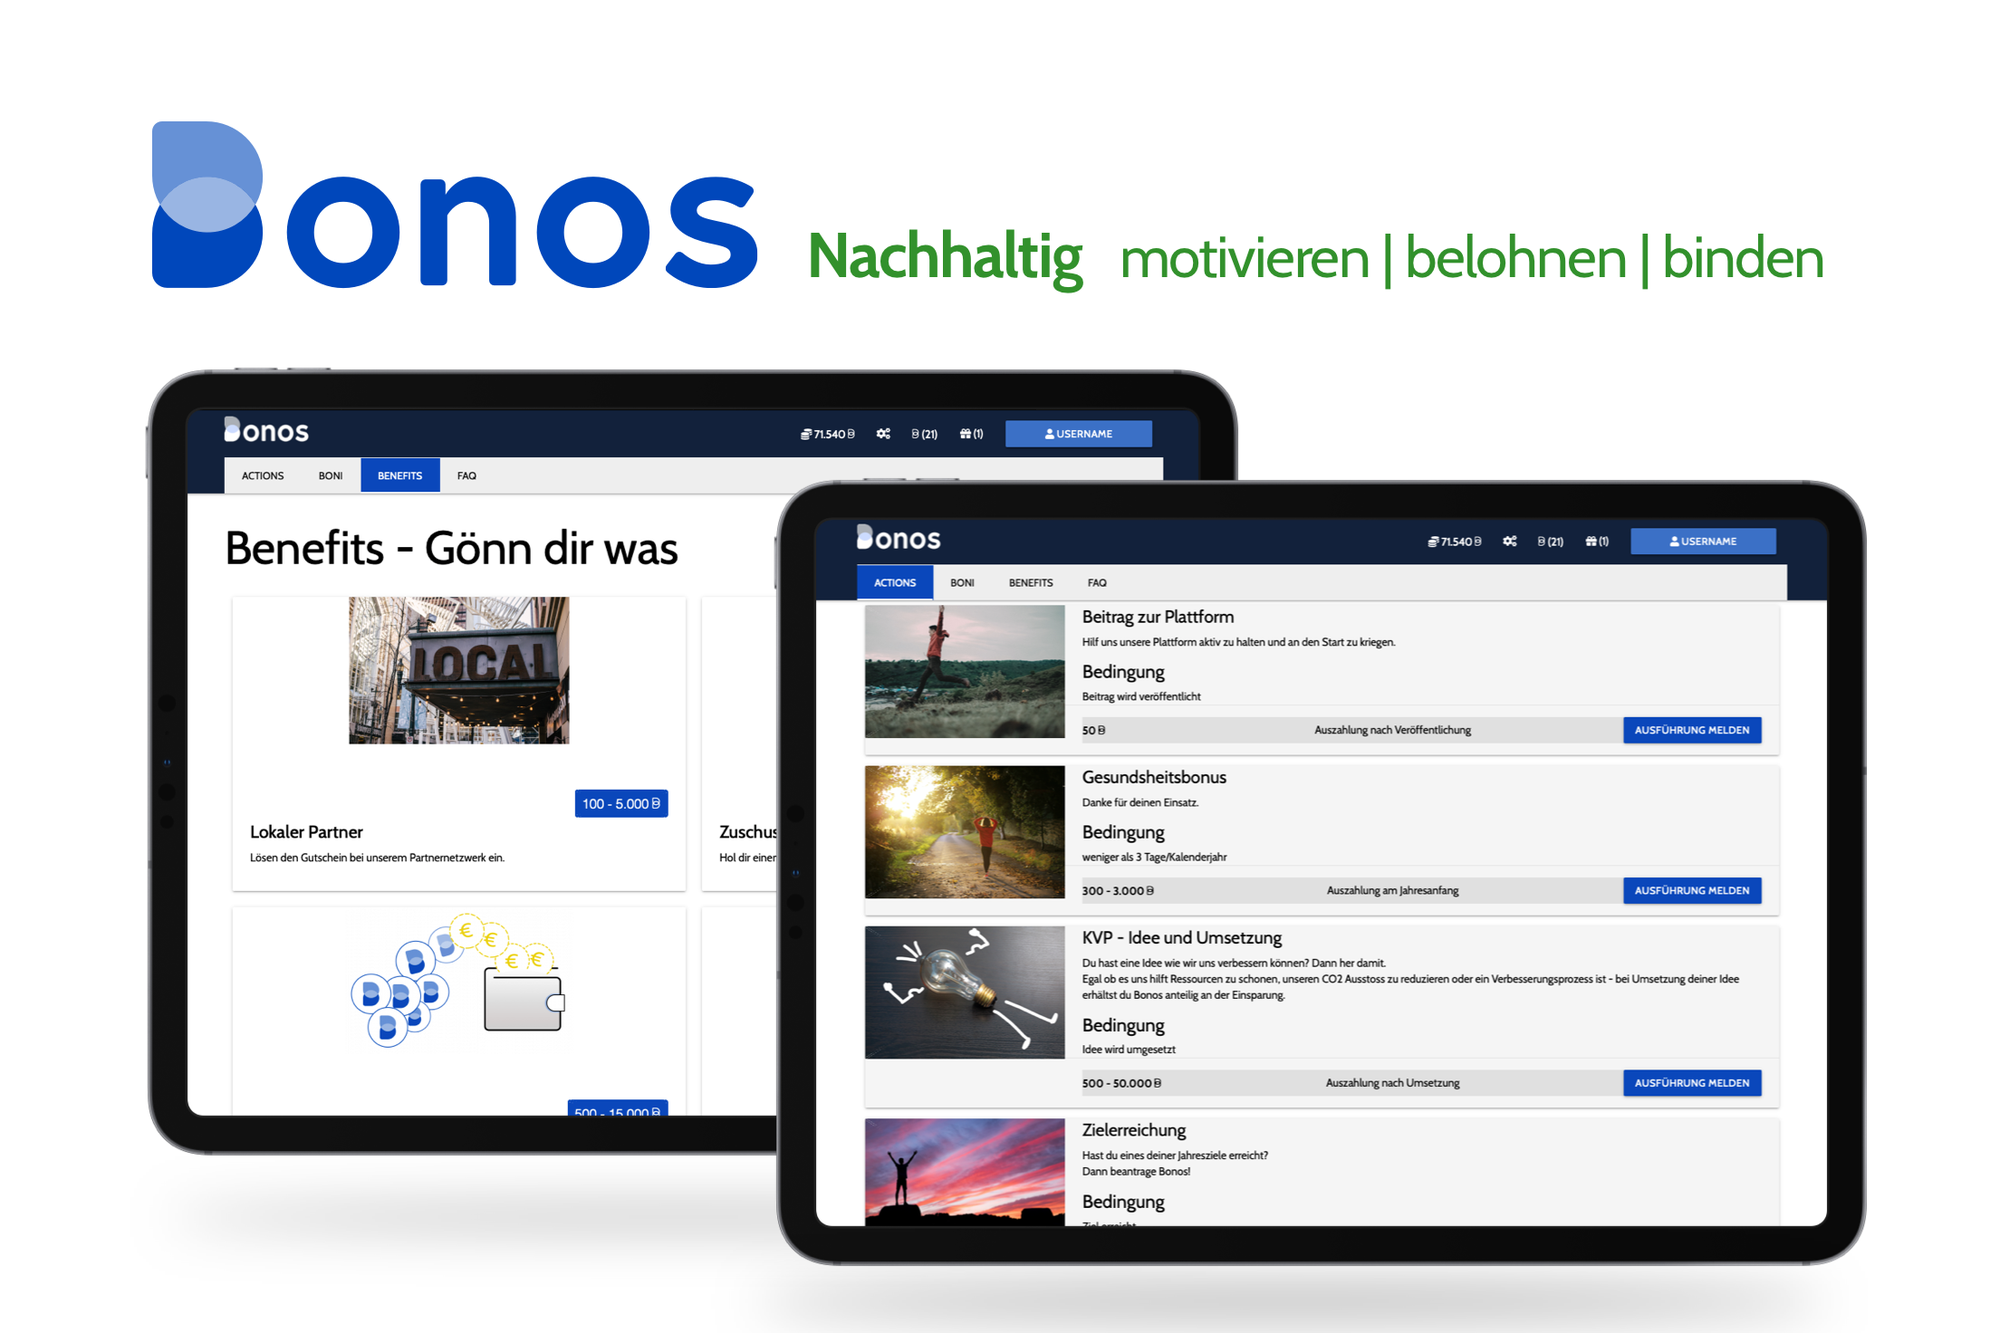 Achieving more together with Bonos - motivation platform from Lindner start-up tibe.io